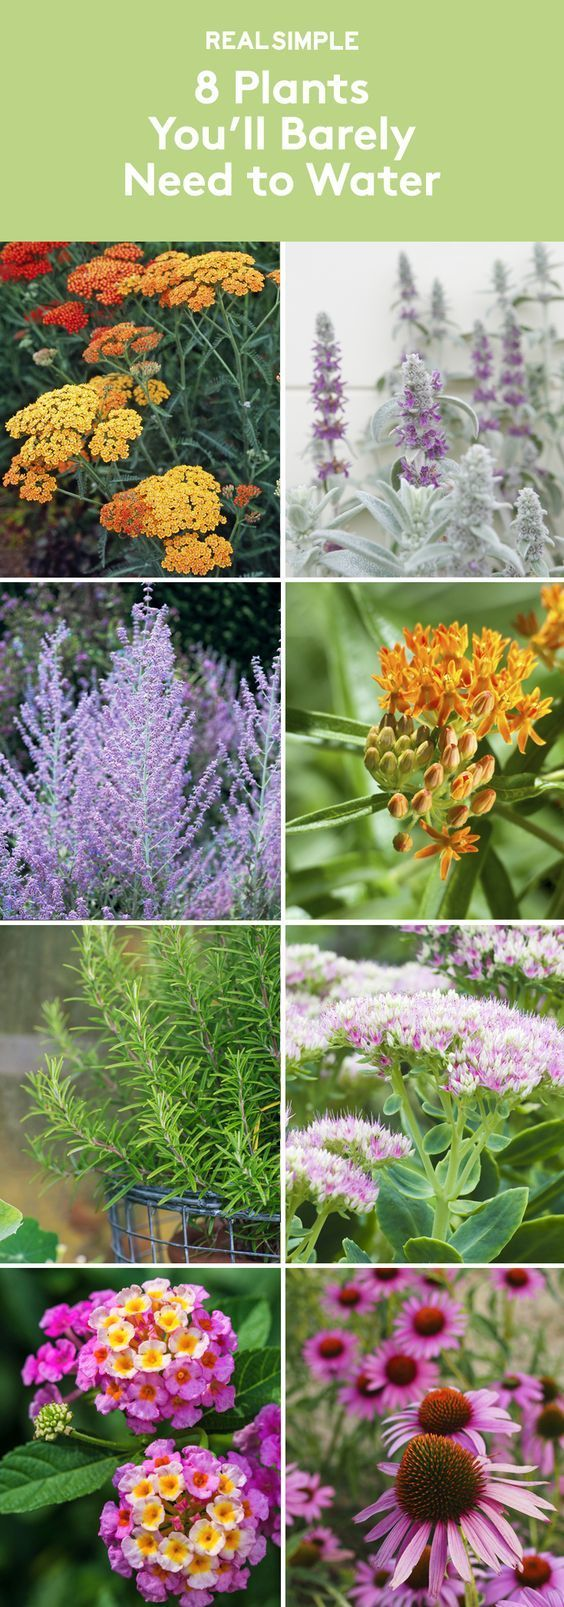 plants youull barely need to water garden inspiration